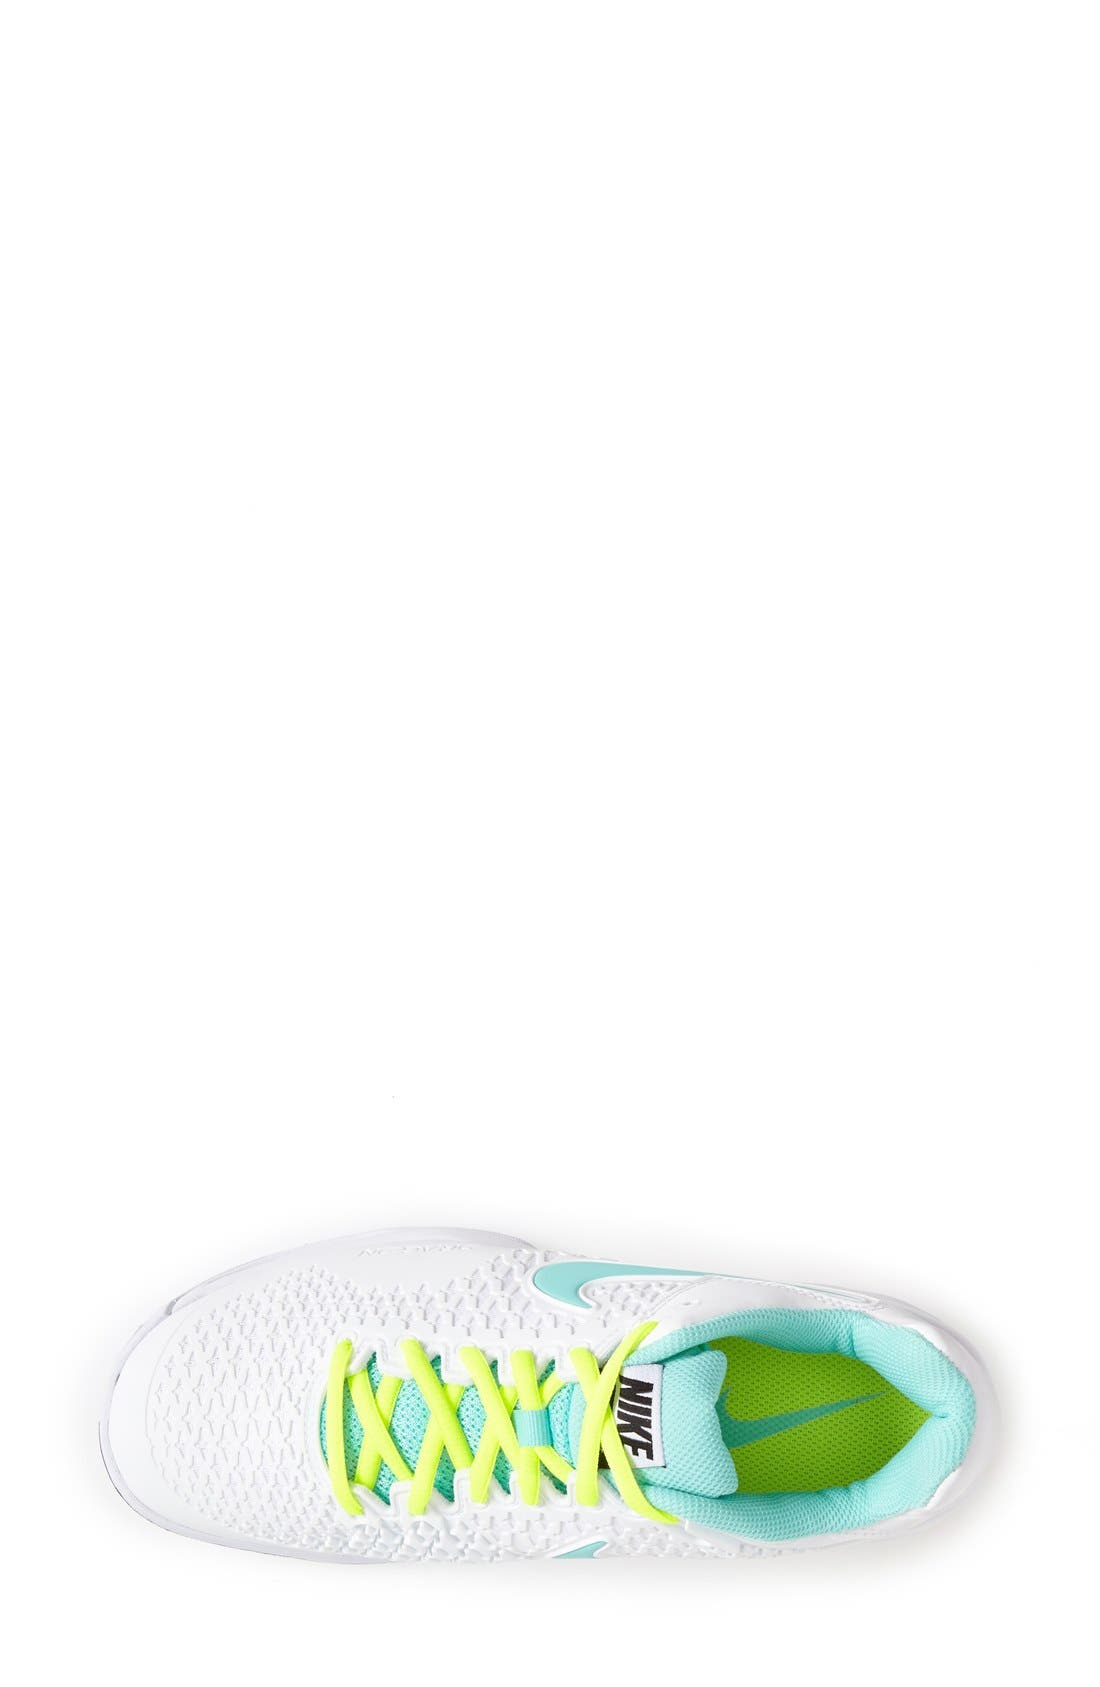 Alternate Image 3  - Nike 'Air Max Cage' Tennis Shoe (Women) (Regular Retail Price: $115.00)